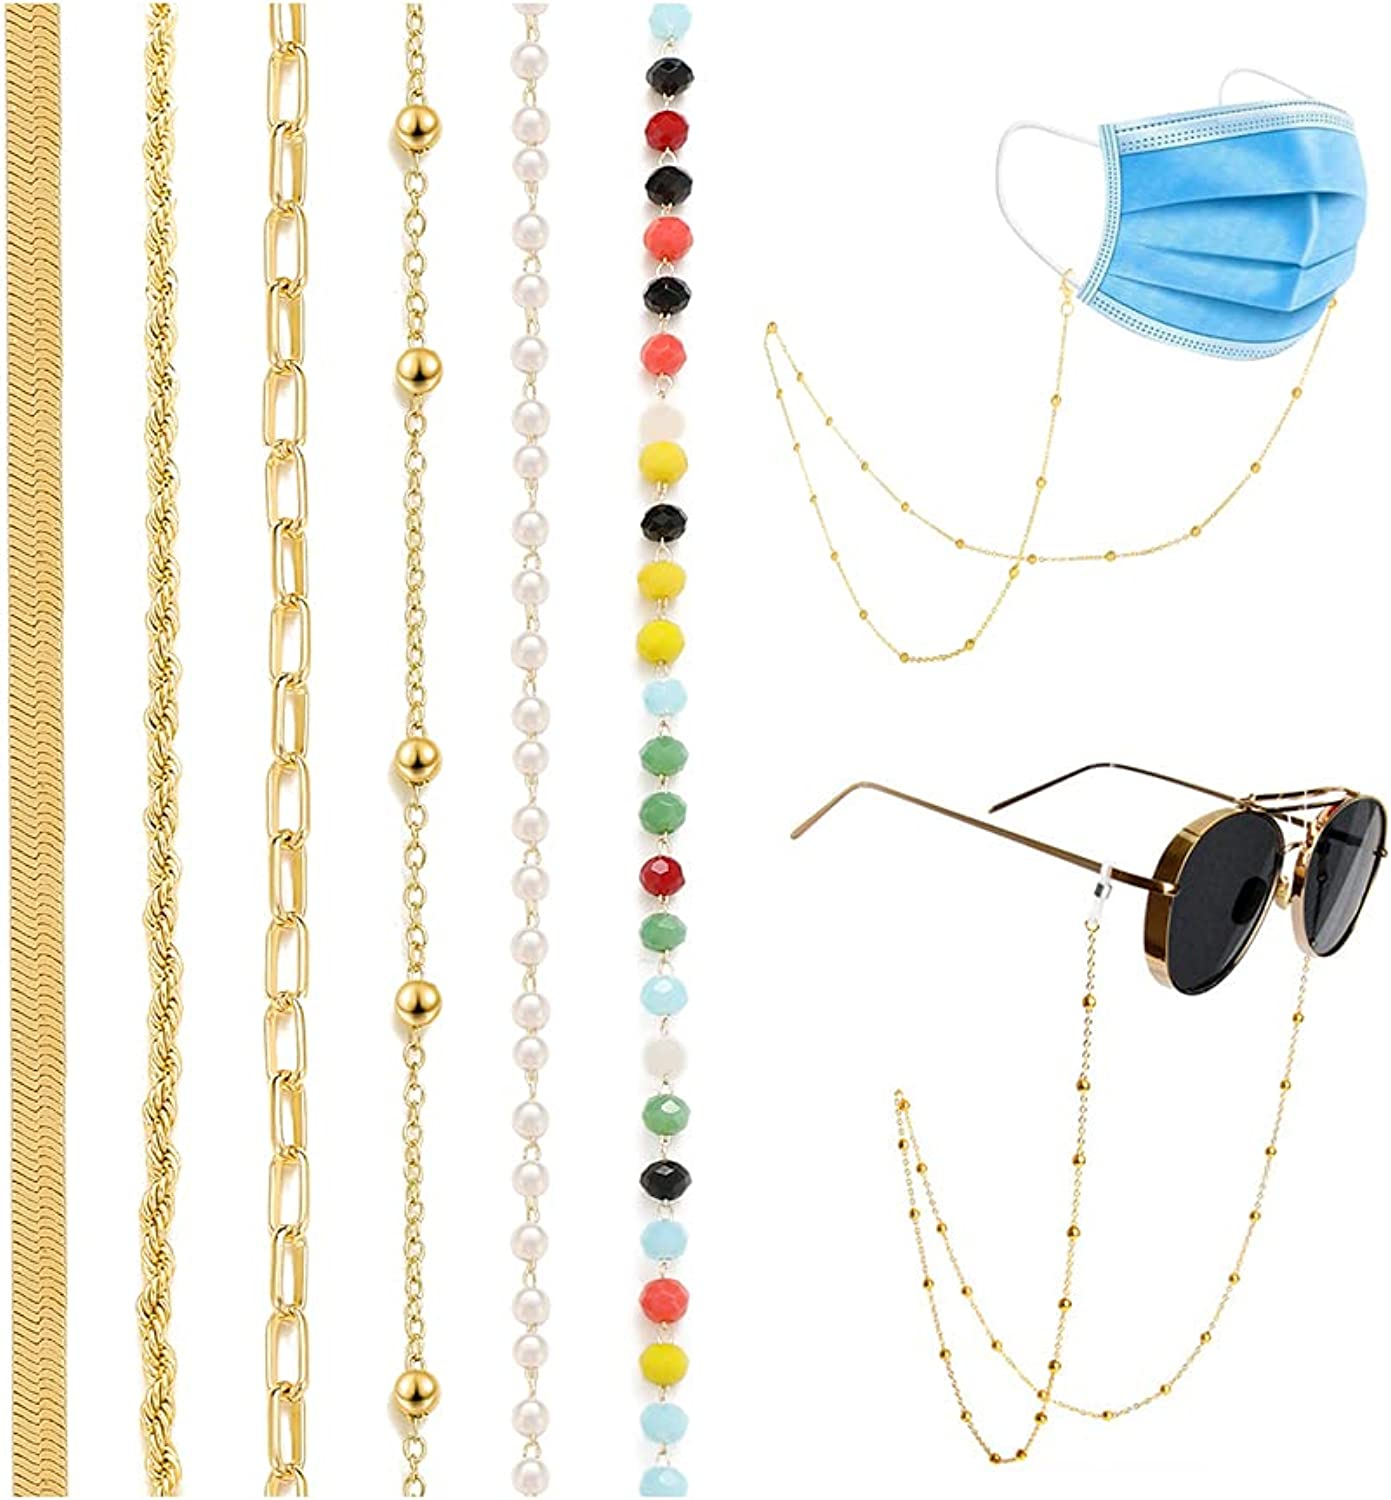 6 PCS In stock Eyeglass Chain for Women Set Necklace G Glasses Link Bombing new work